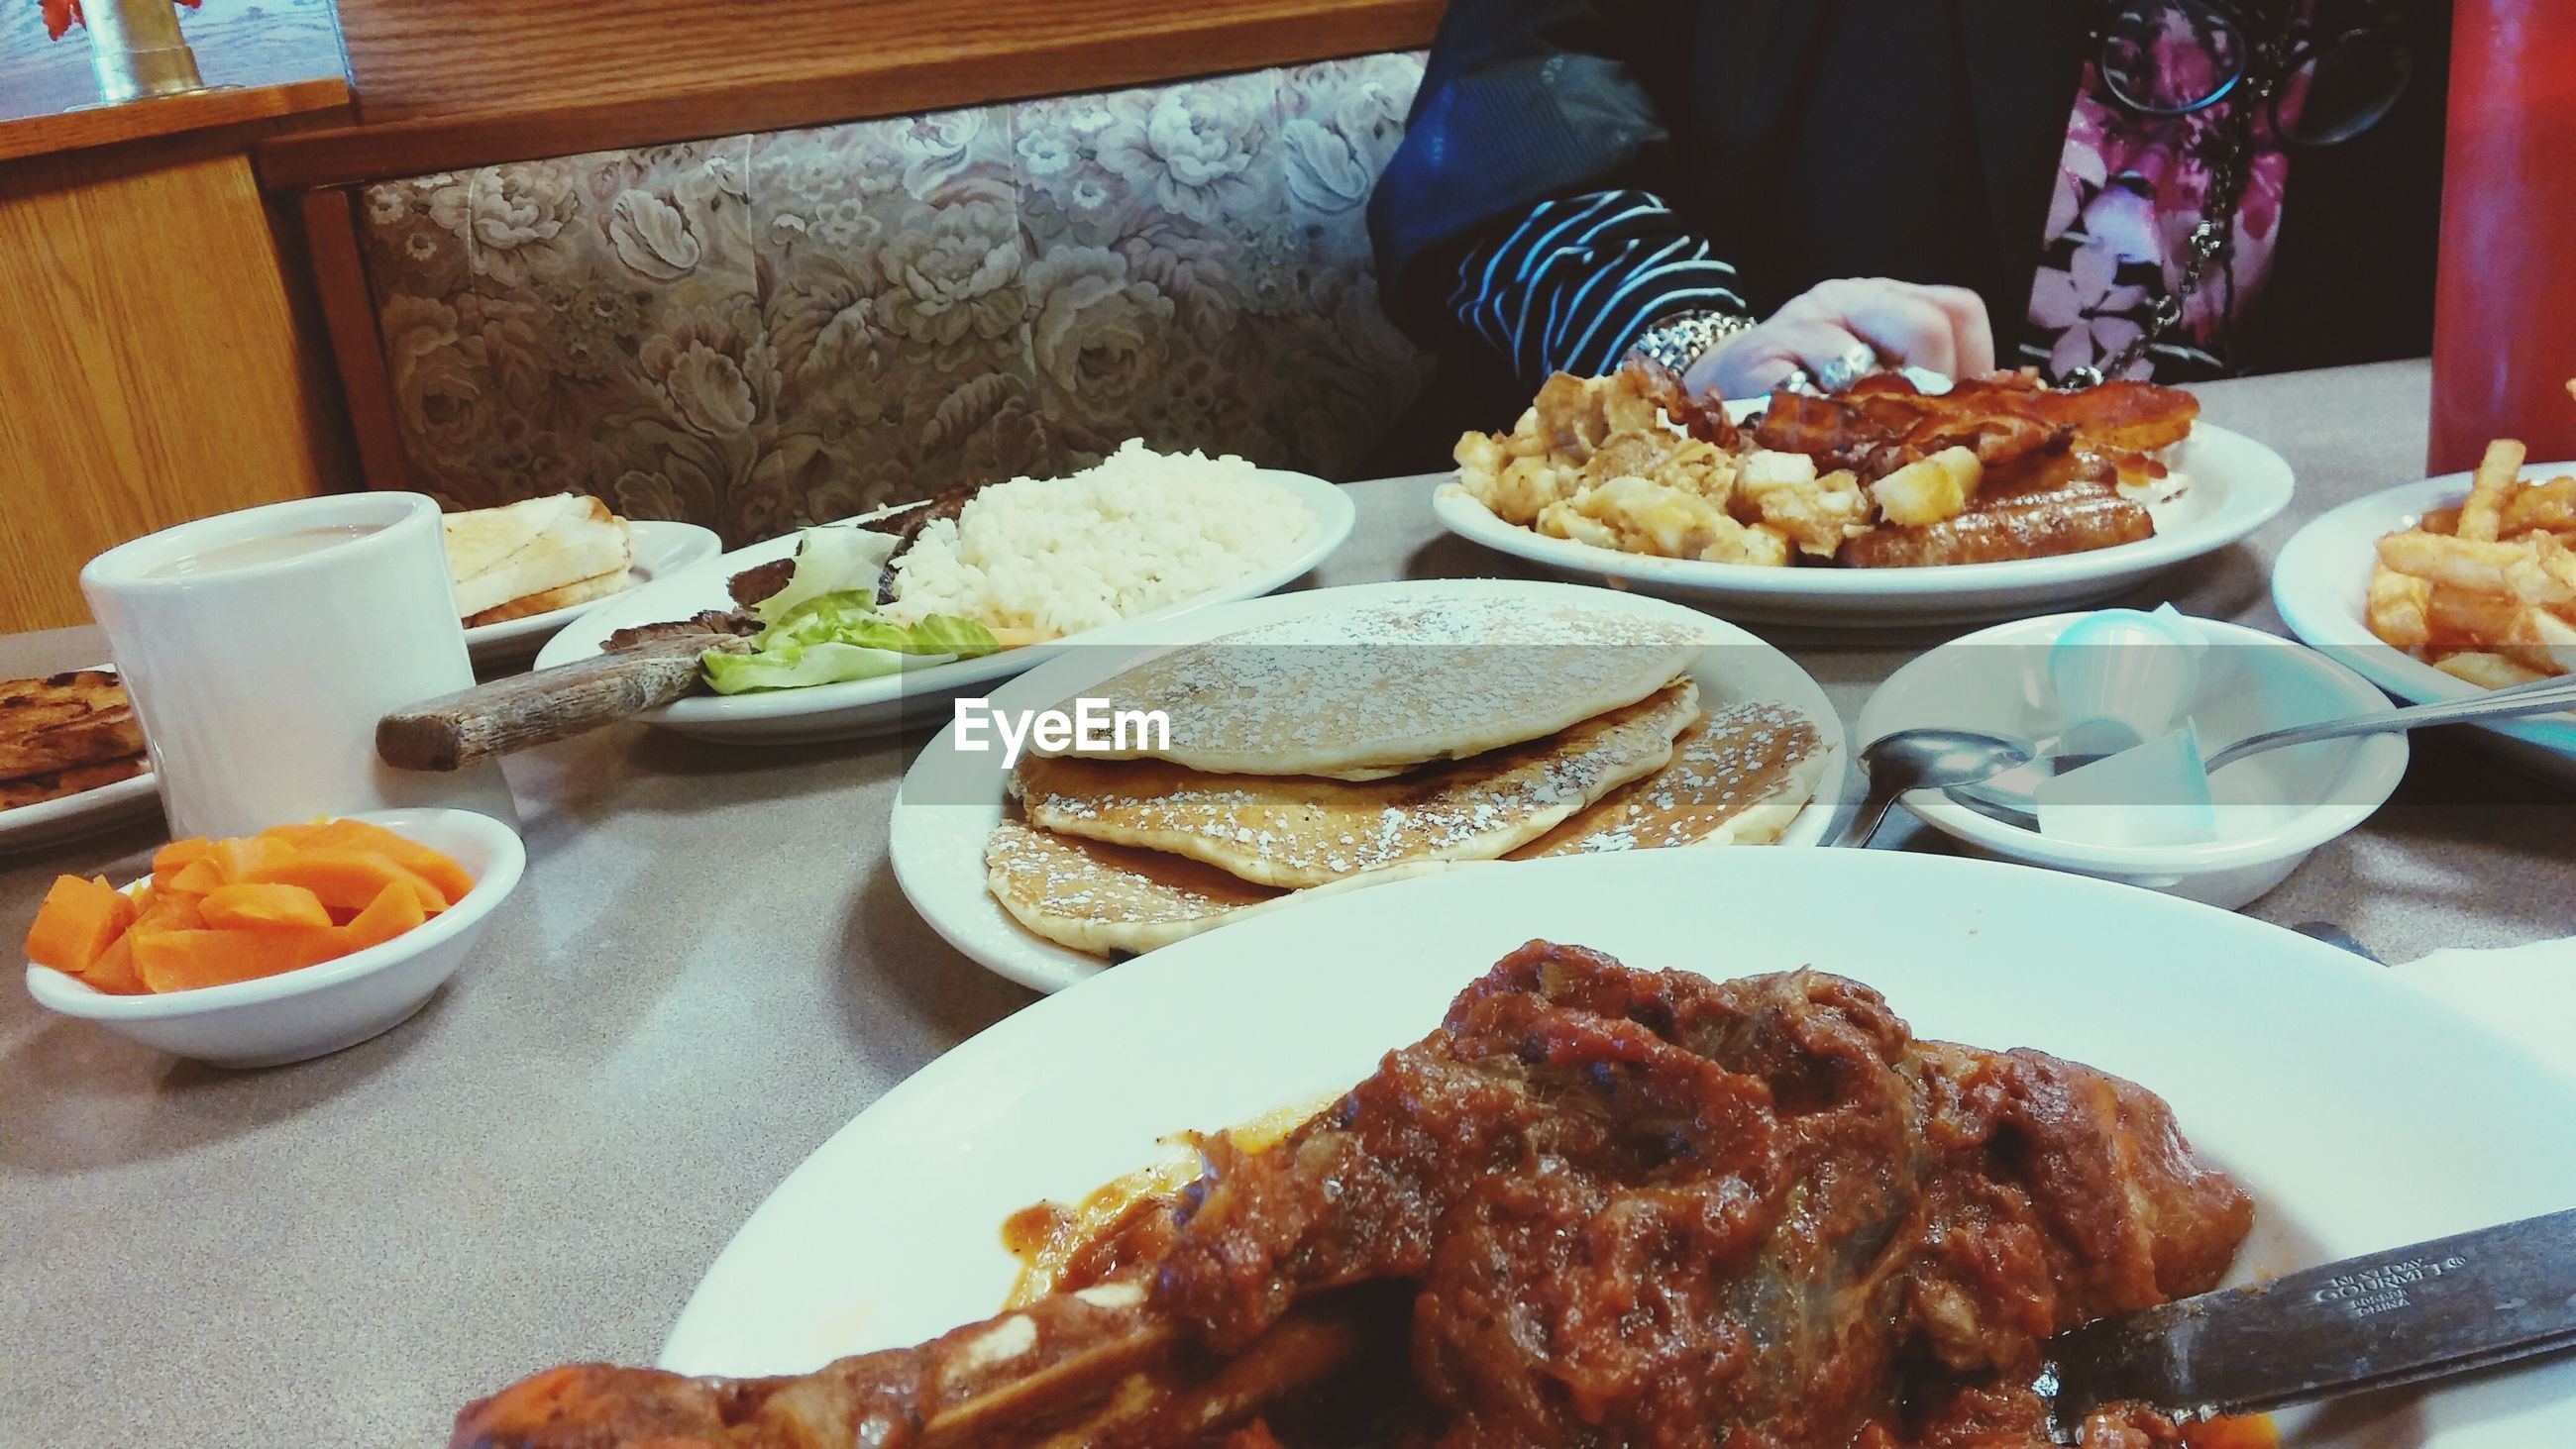 Midsection of woman having food at table